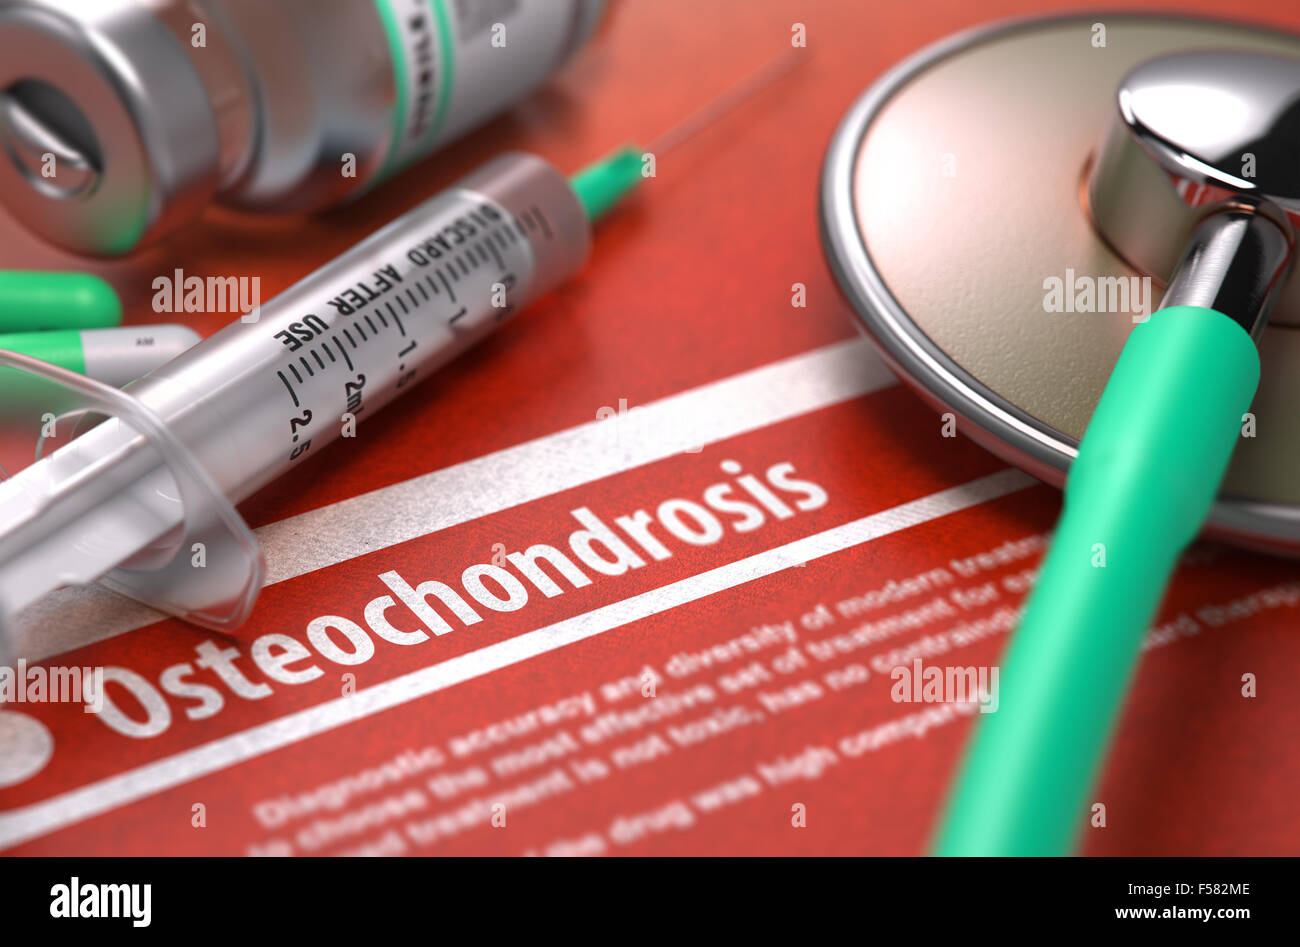 Osteochondrosis - Printed Diagnosis on Orange Background and Medical Composition - Stethoscope, Pills and Syringe. - Stock Image